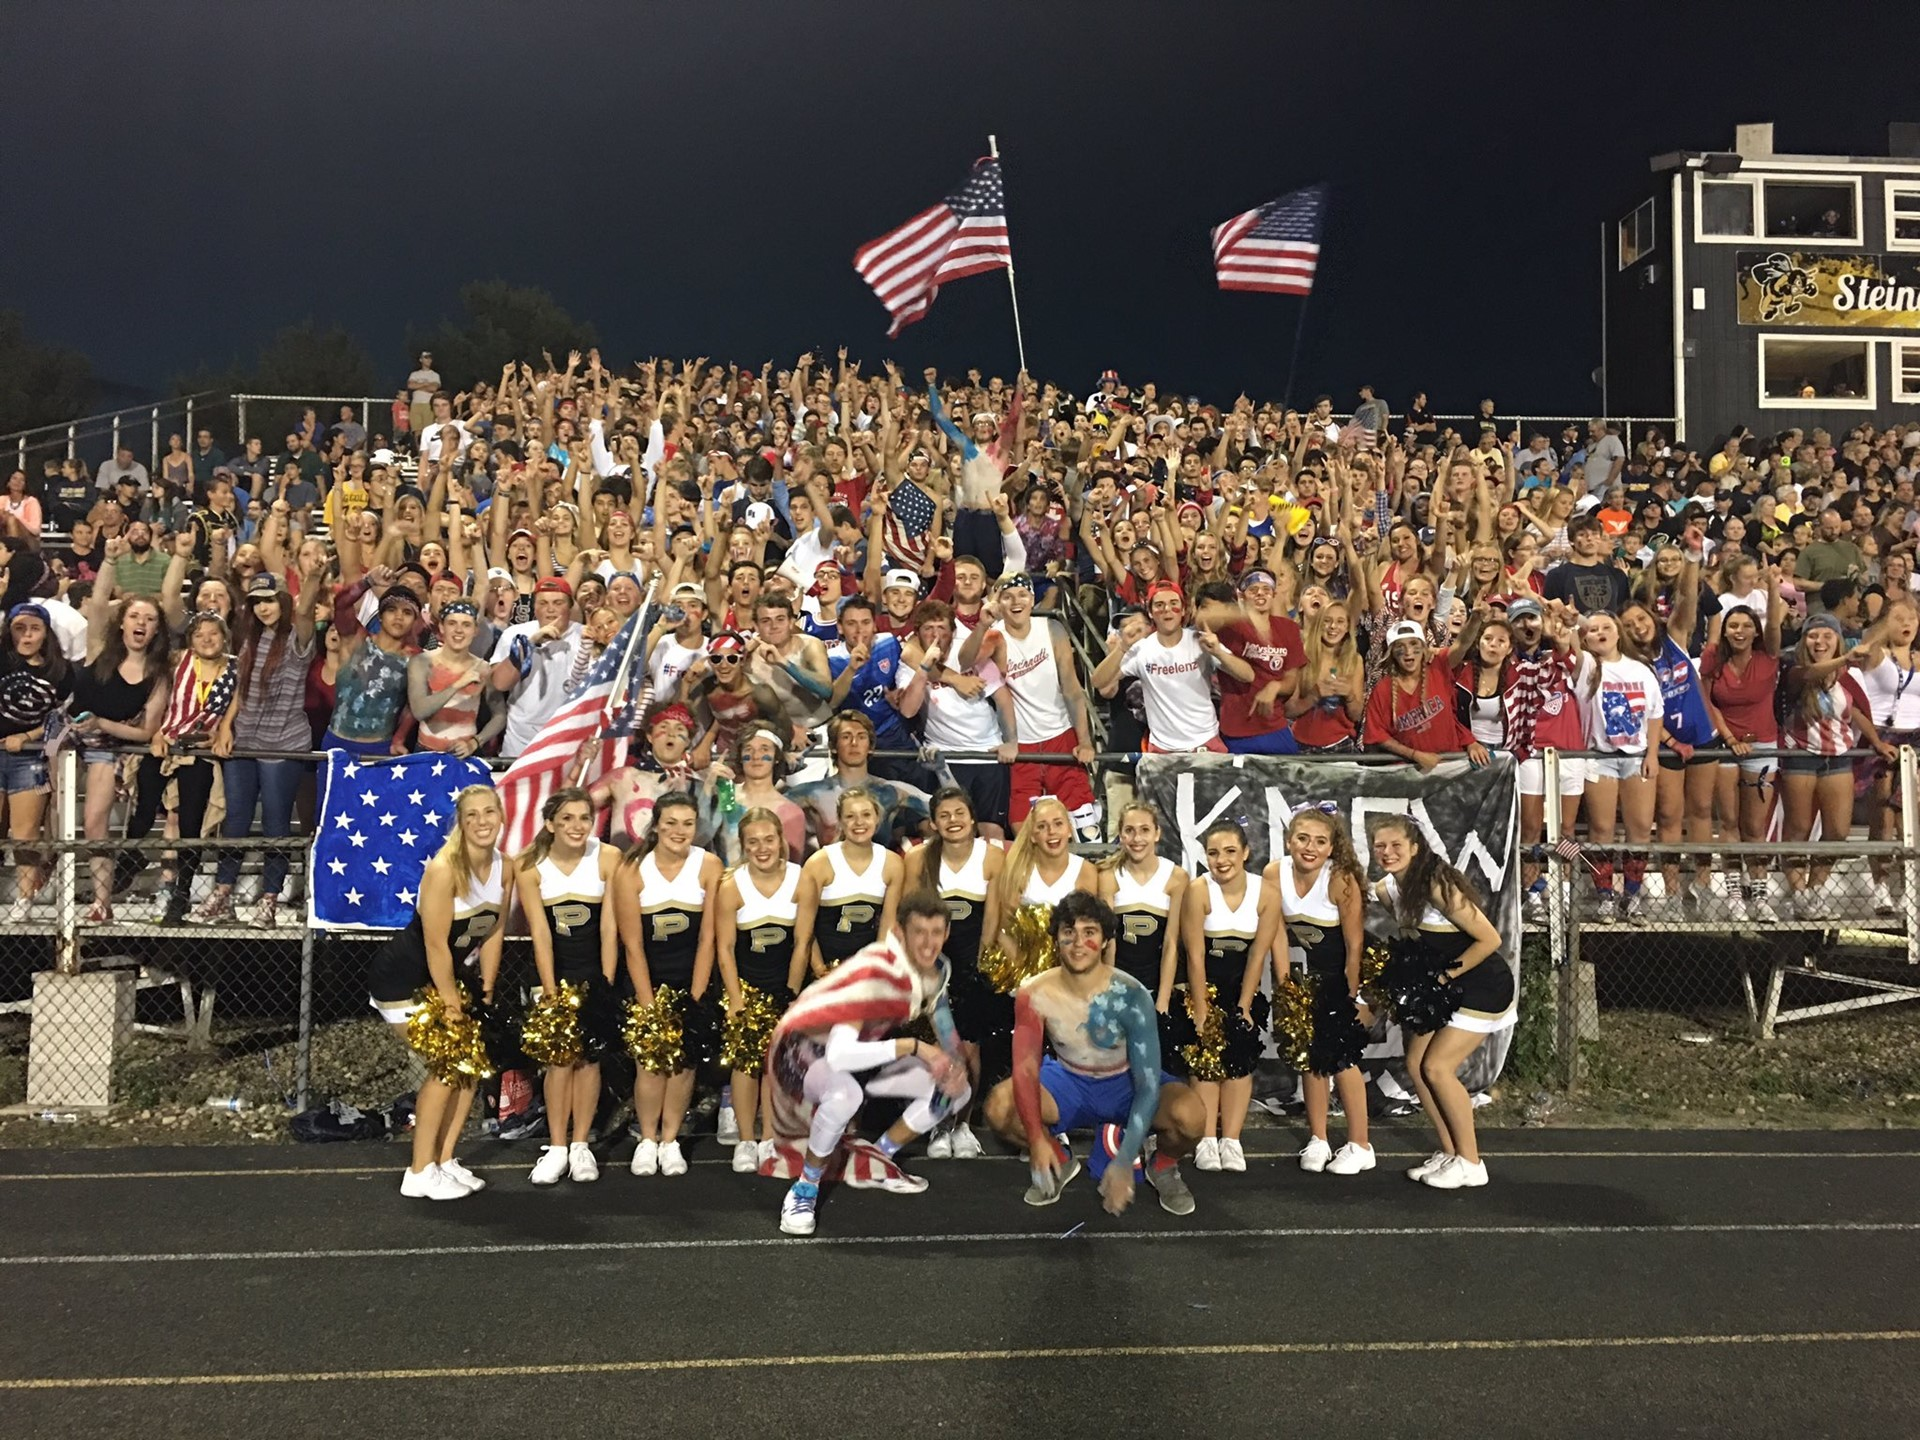 PHS students cheering at a football game